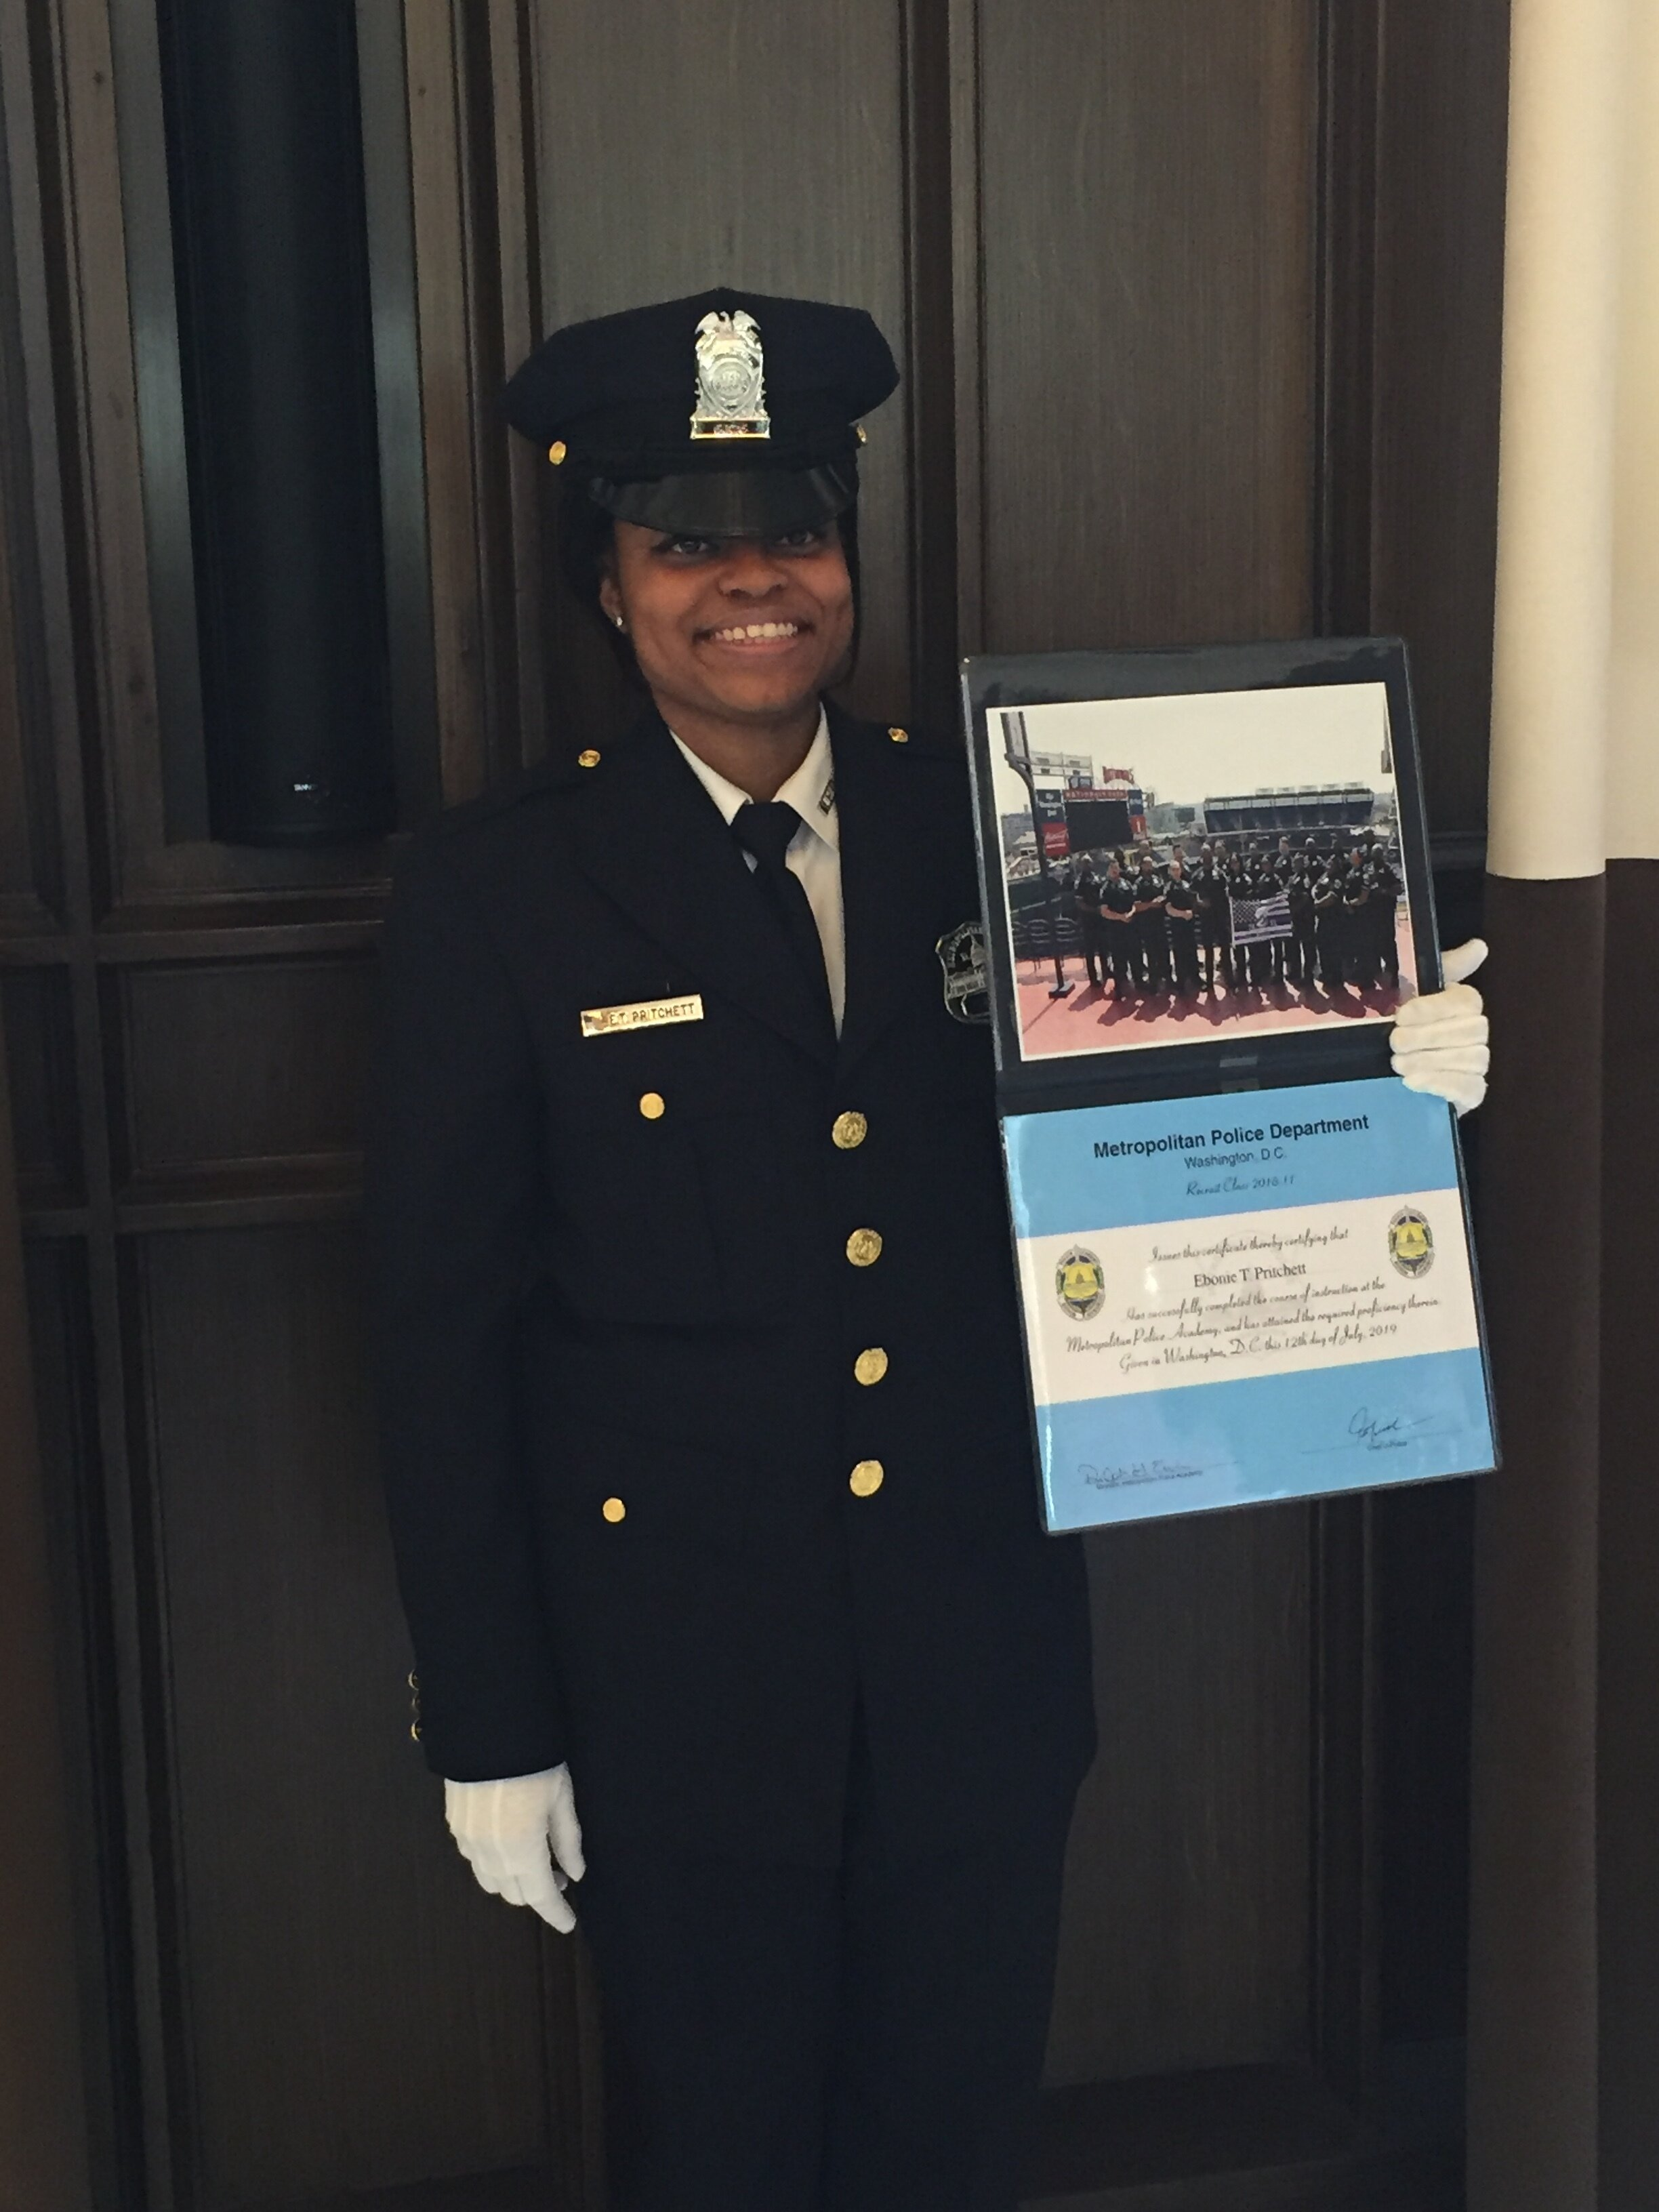 Former Club member Ebonie Pritchett is now employed as a police officer in Washington, D.C.